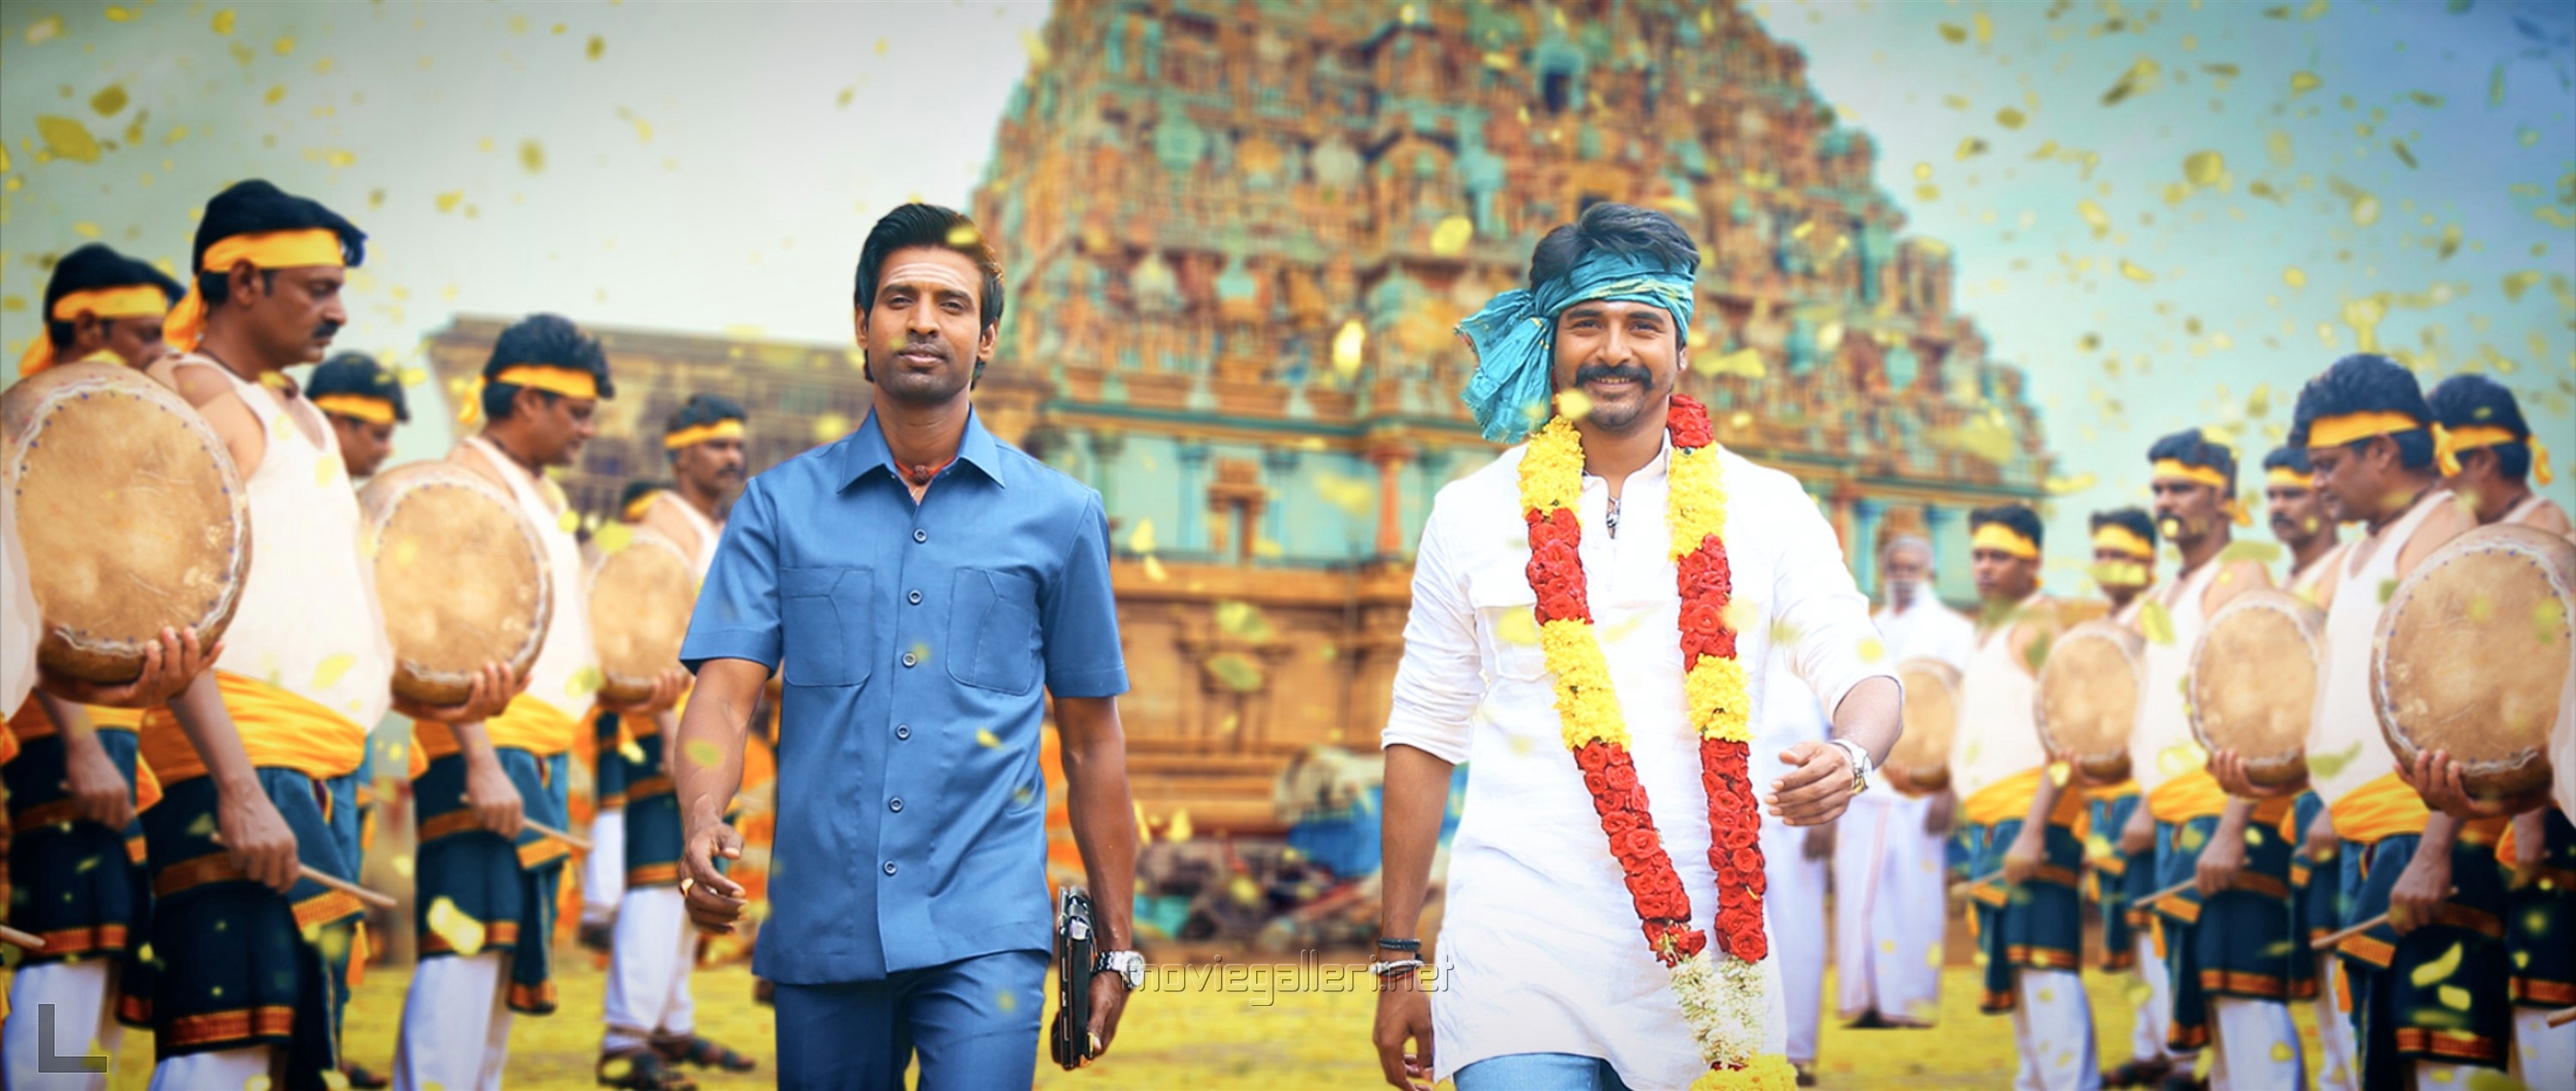 Soori & Sivakarthikeyan in Seema Raja Movie Review